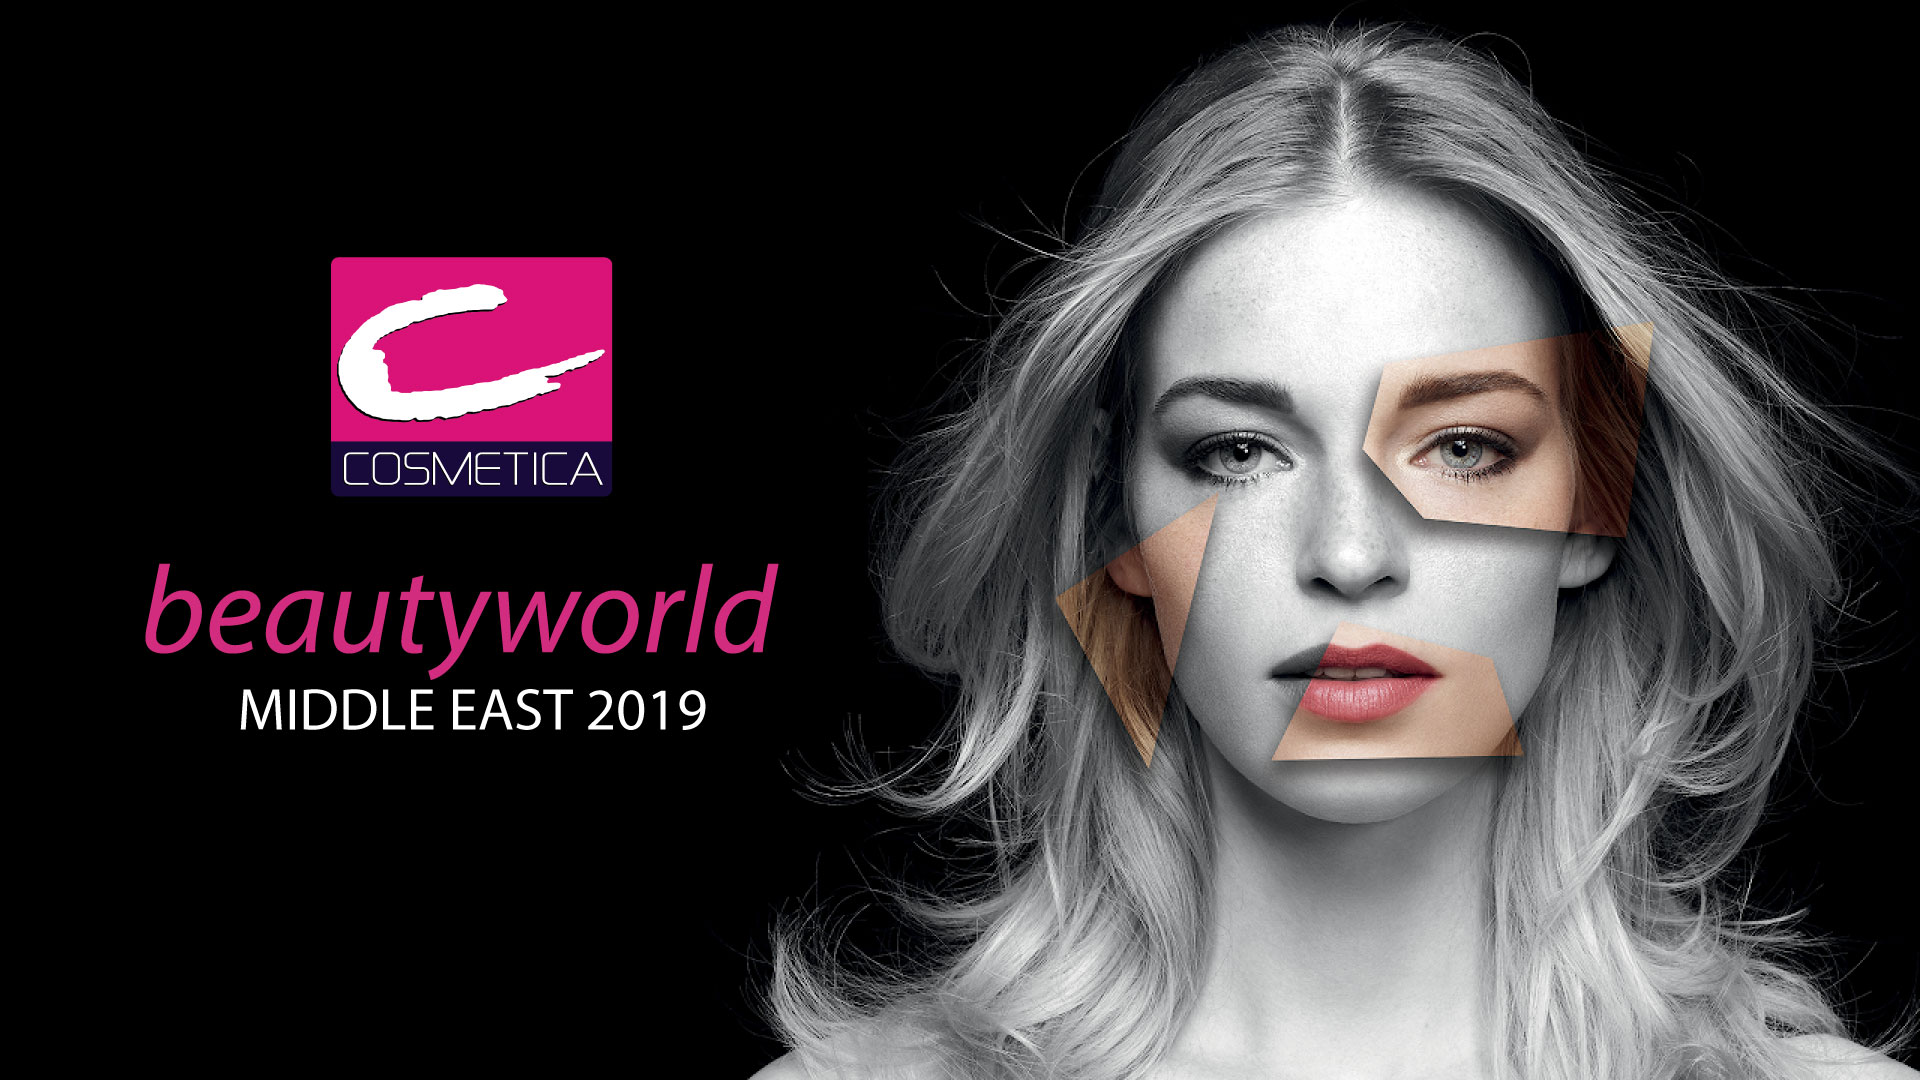 COSMETICA Highlights of beautyworld Middle East 2019